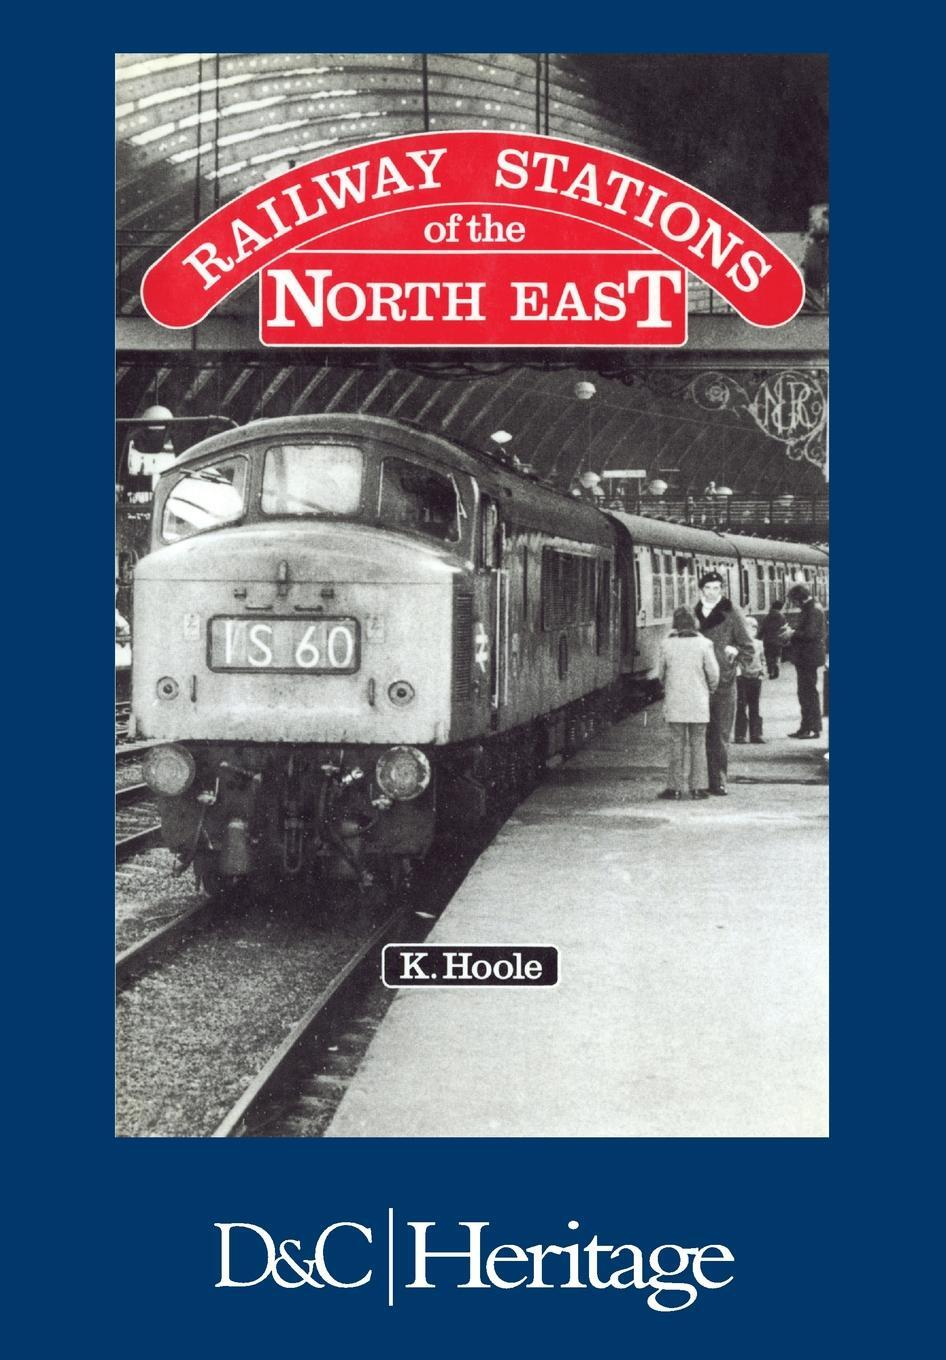 Railway Stations of the North East